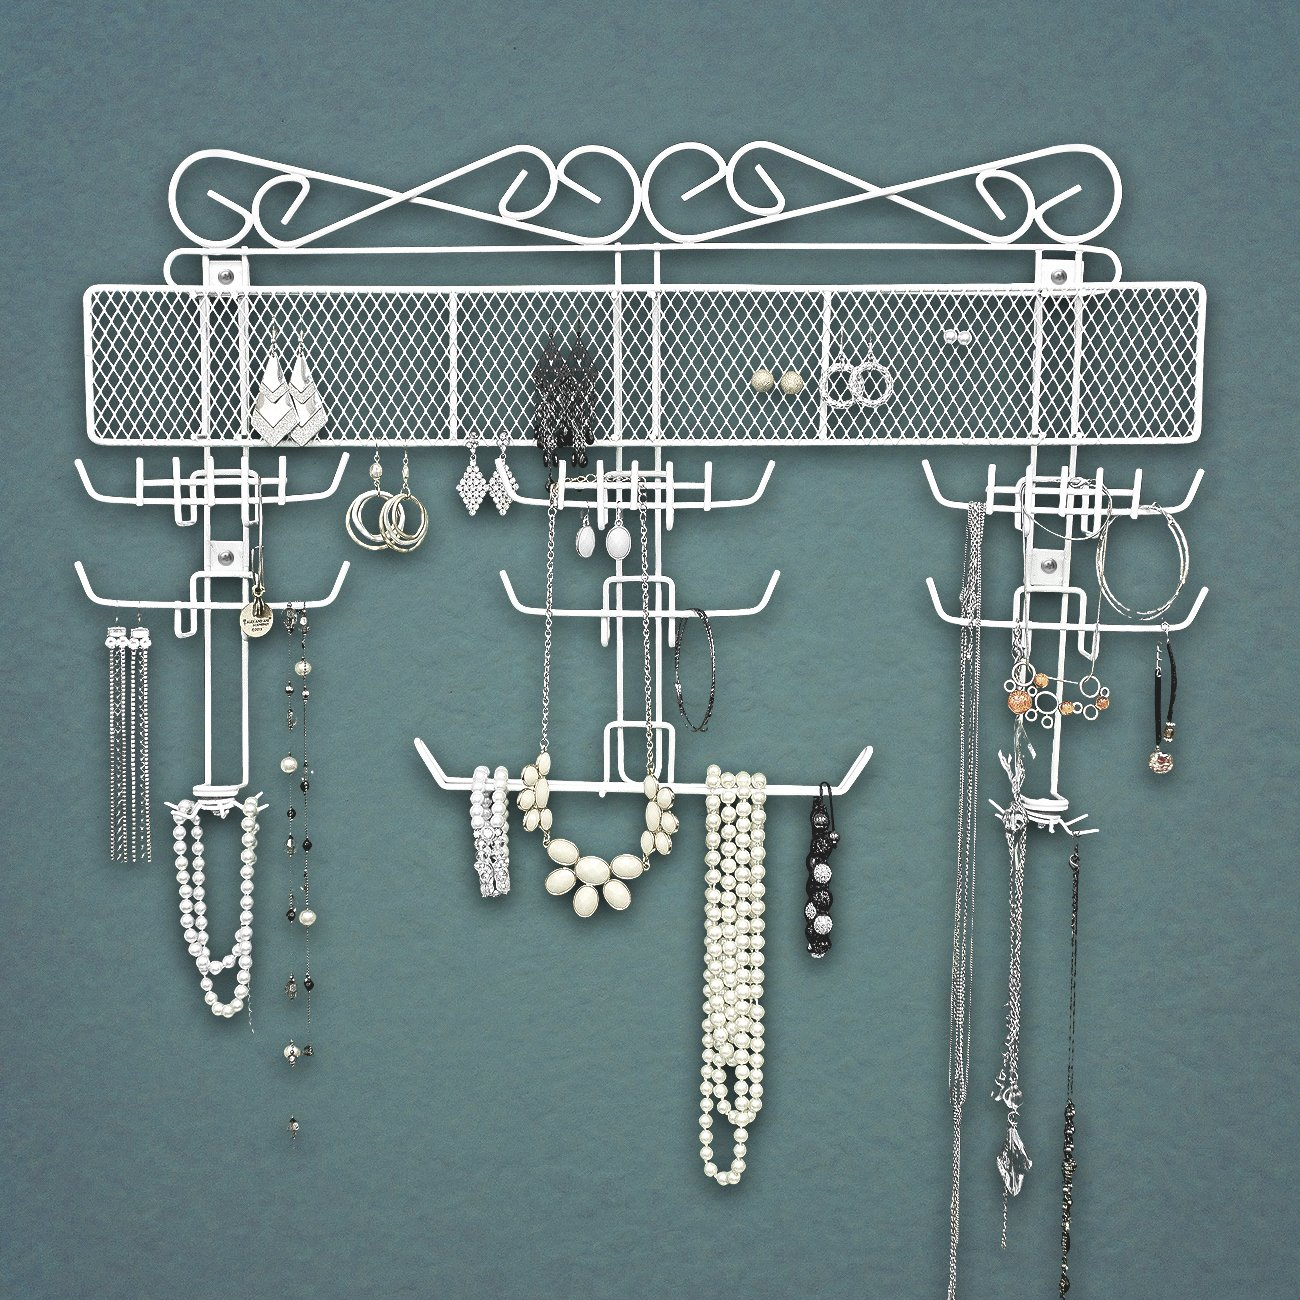 Sorbus Jewelry Hanger Organizer Valet - Great for Earrings, Bracelets, Necklaces, More